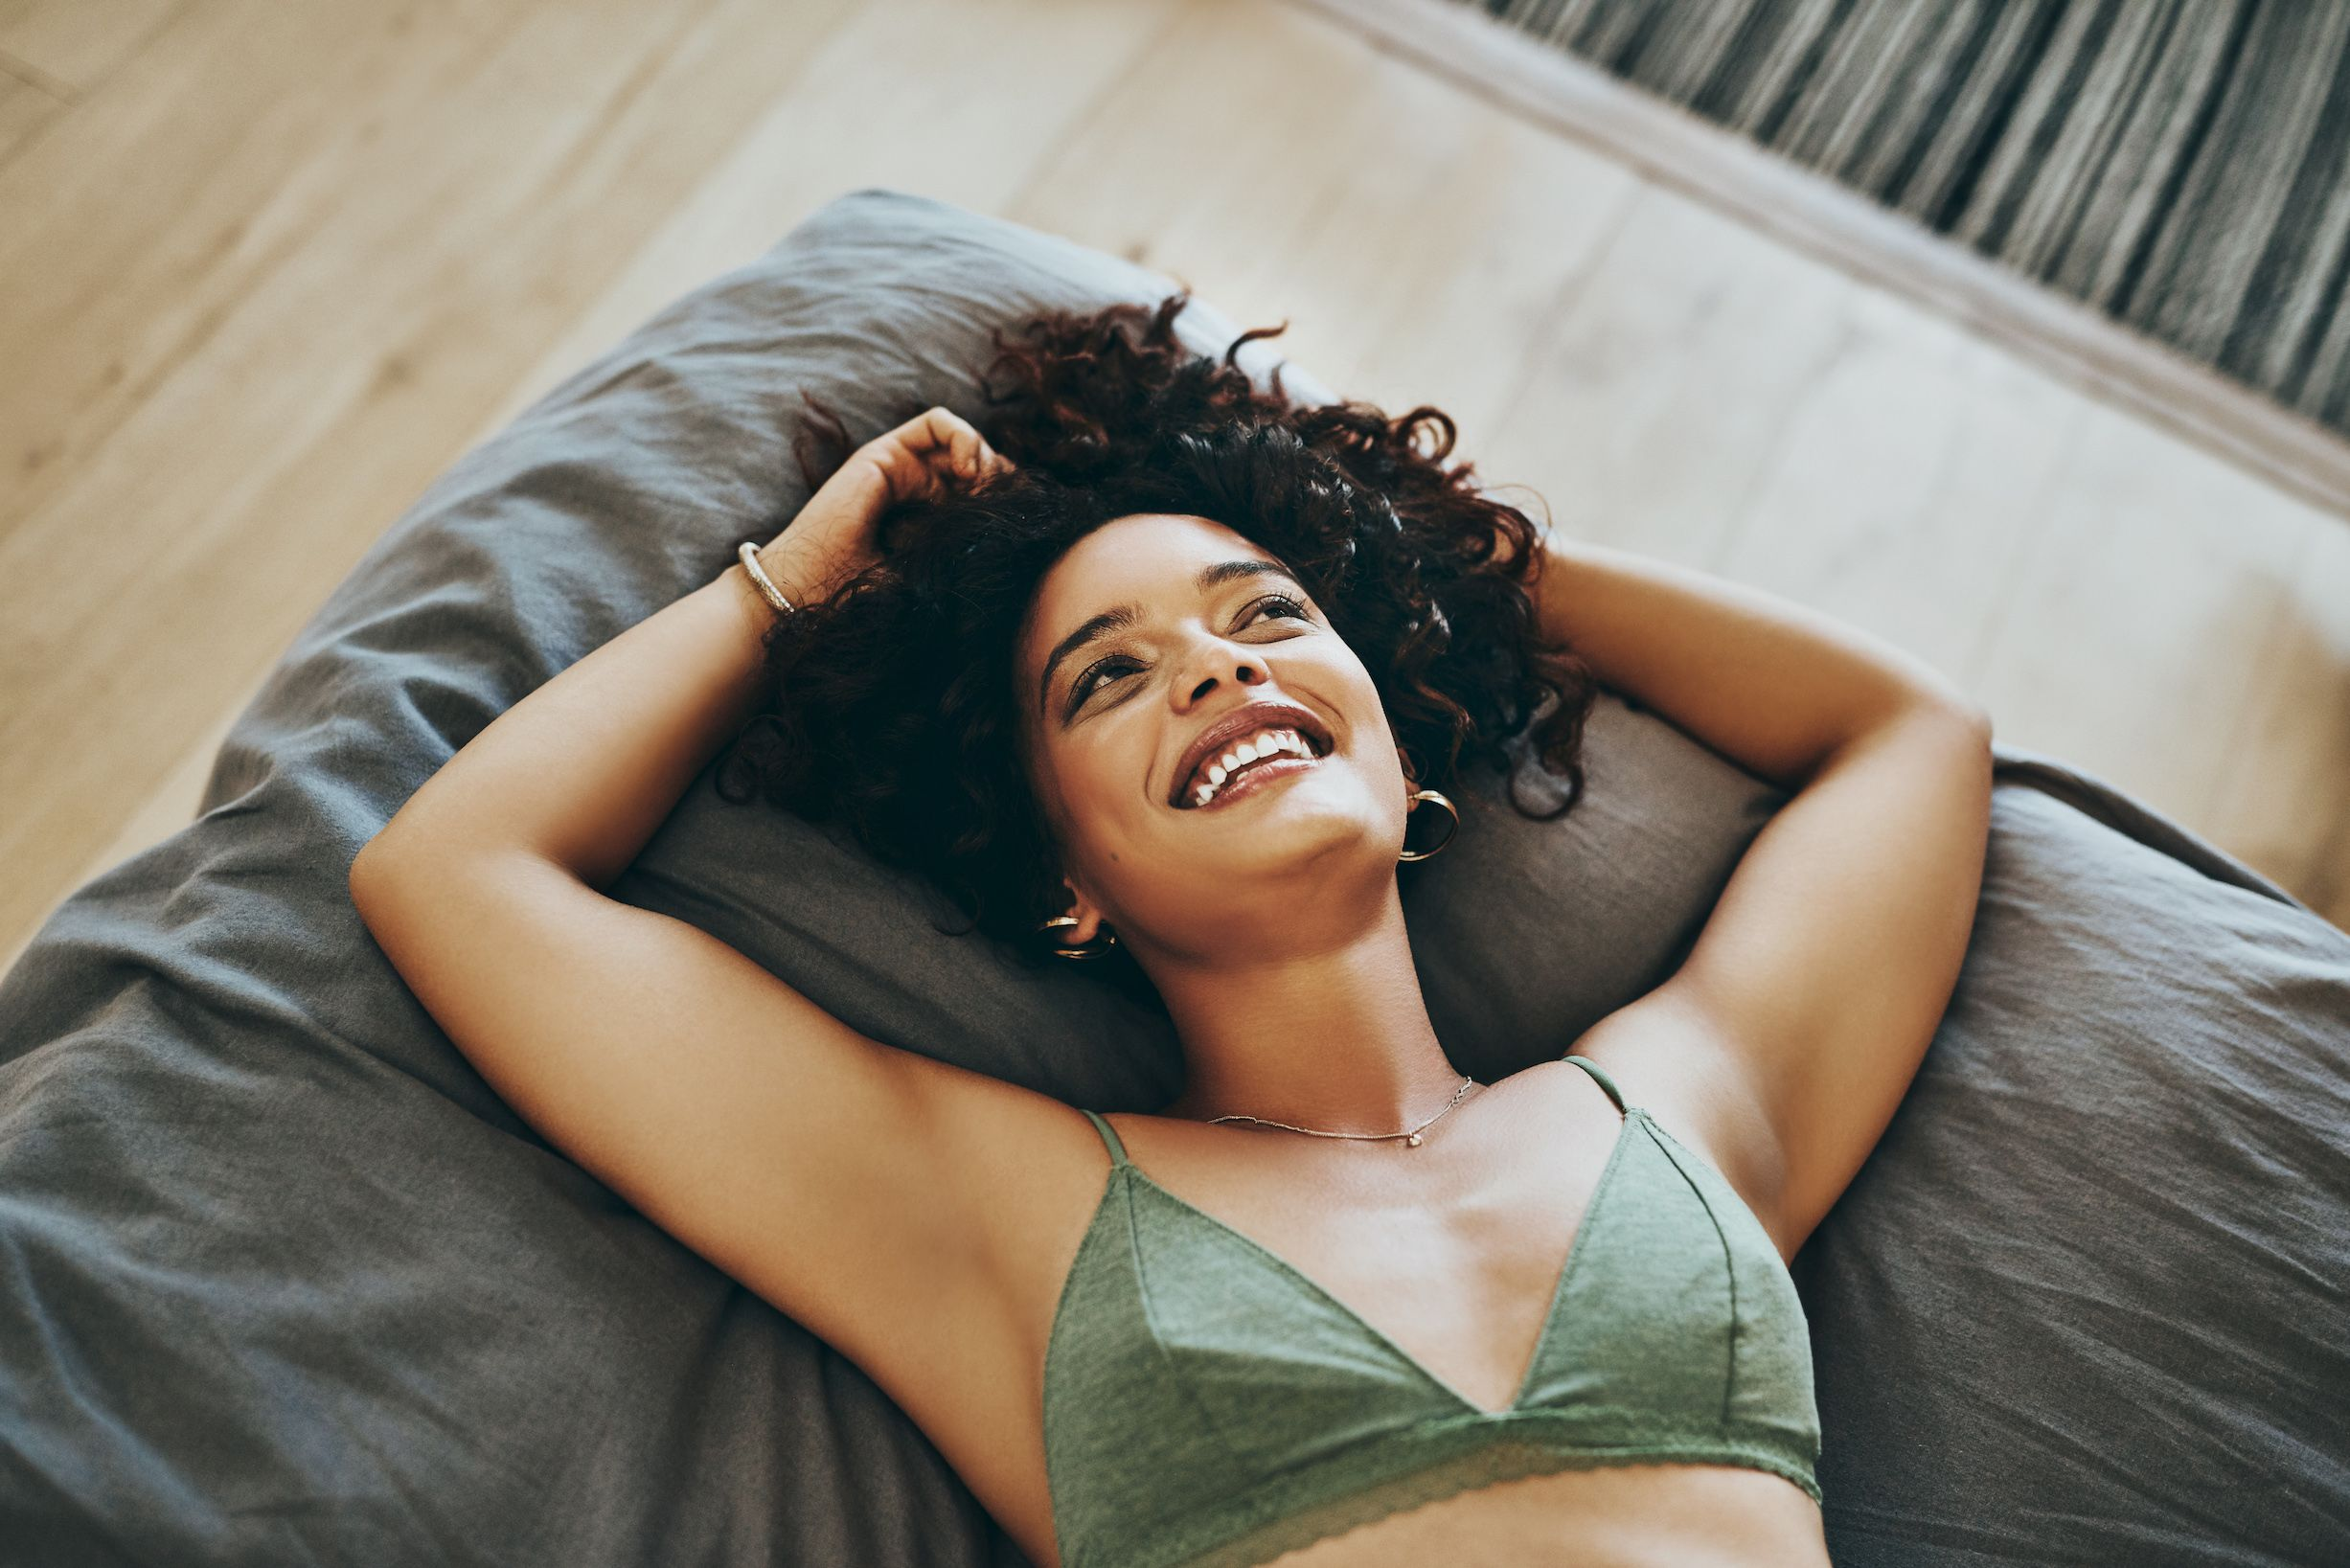 Going Braless: Pros and Cons of Wearing a Bra